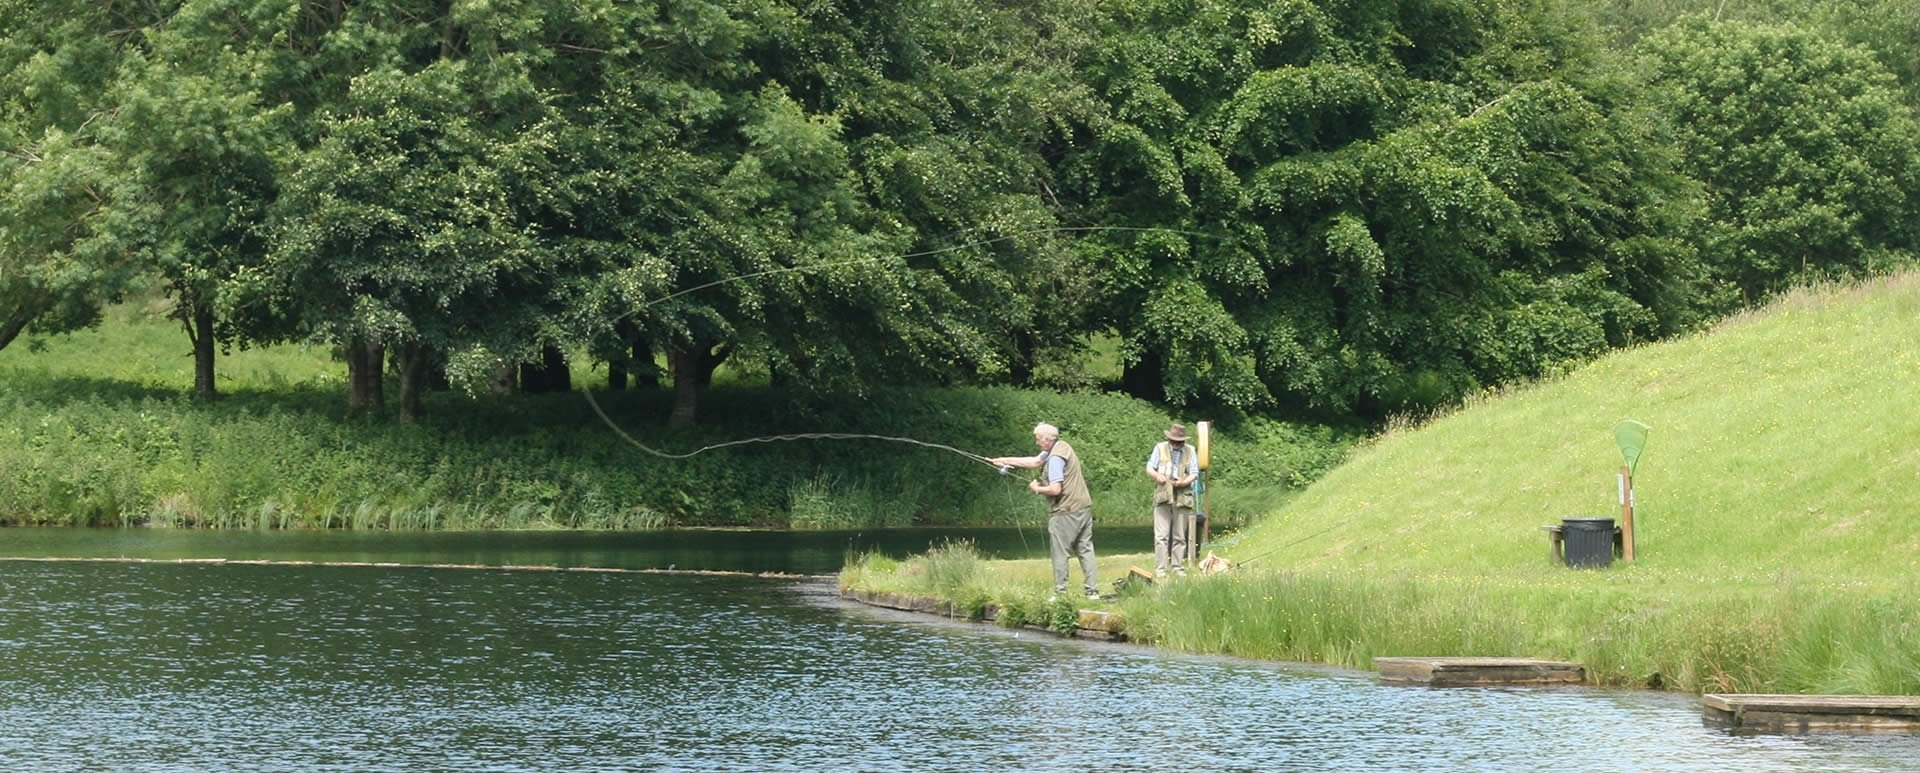 Fly fishing at the Green Frog. Moffat